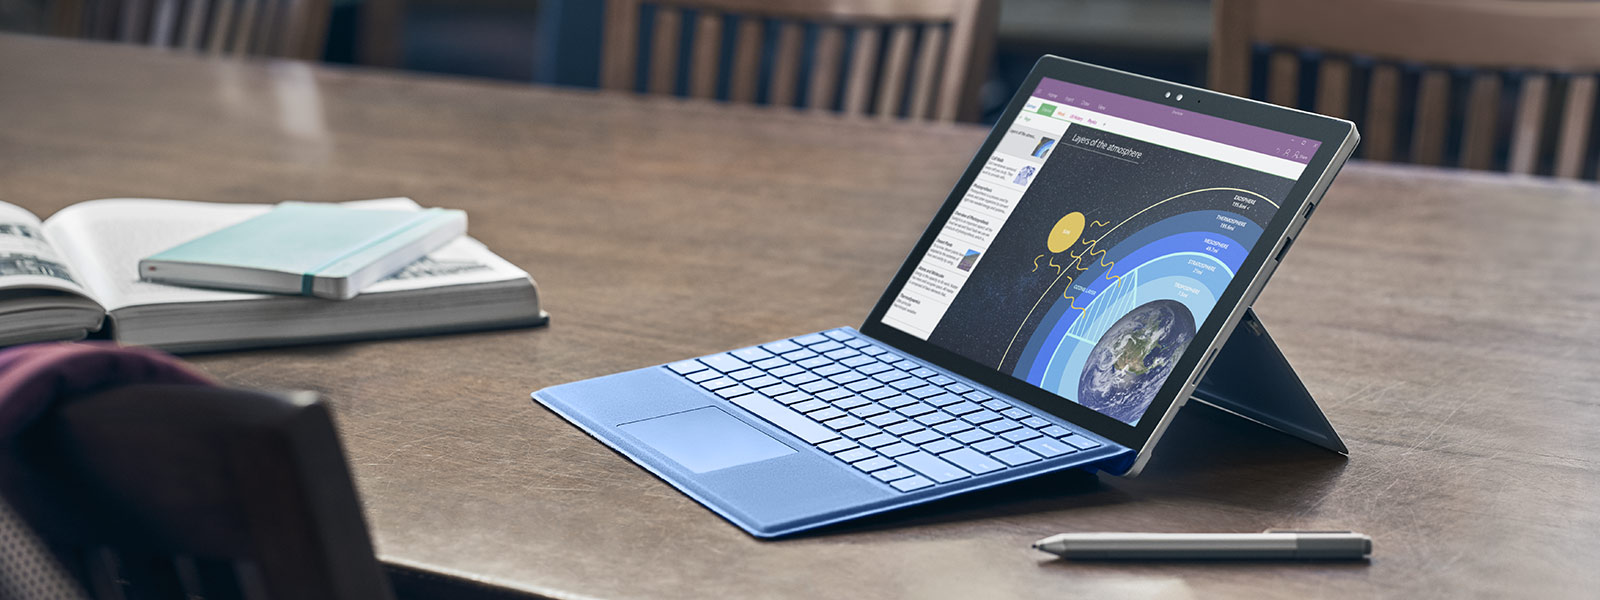 Surface Pro 4 in Pro 4 Mode with Surface Pen.